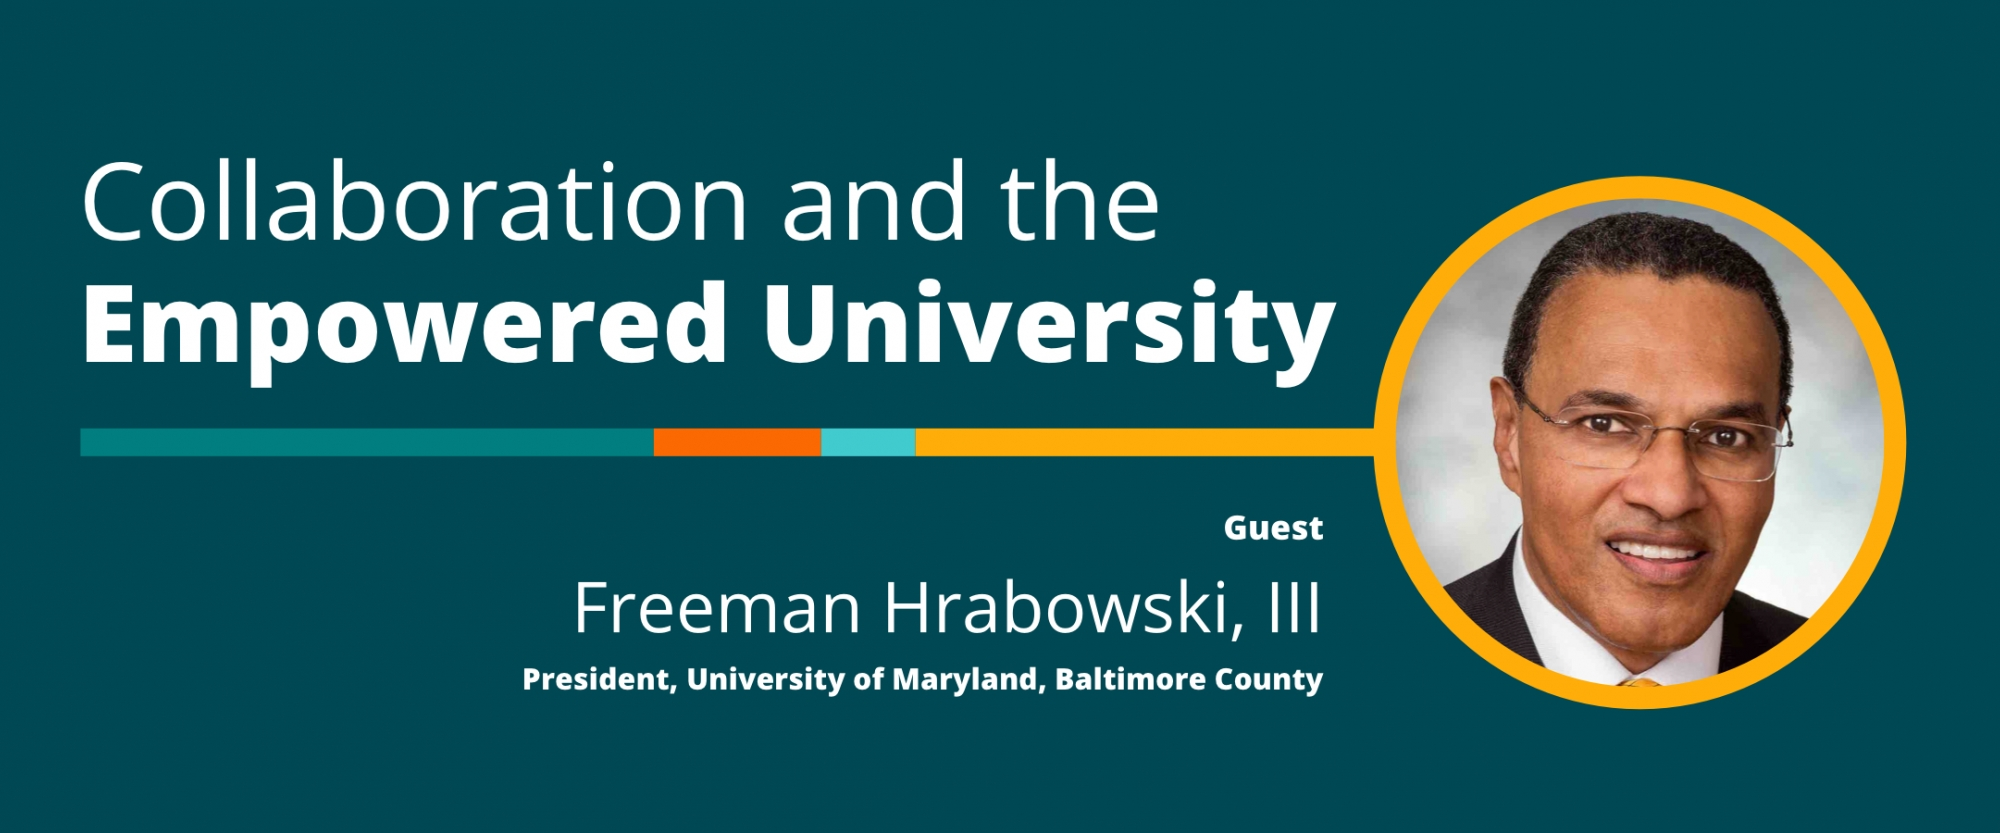 Collaboration and the Empowered University